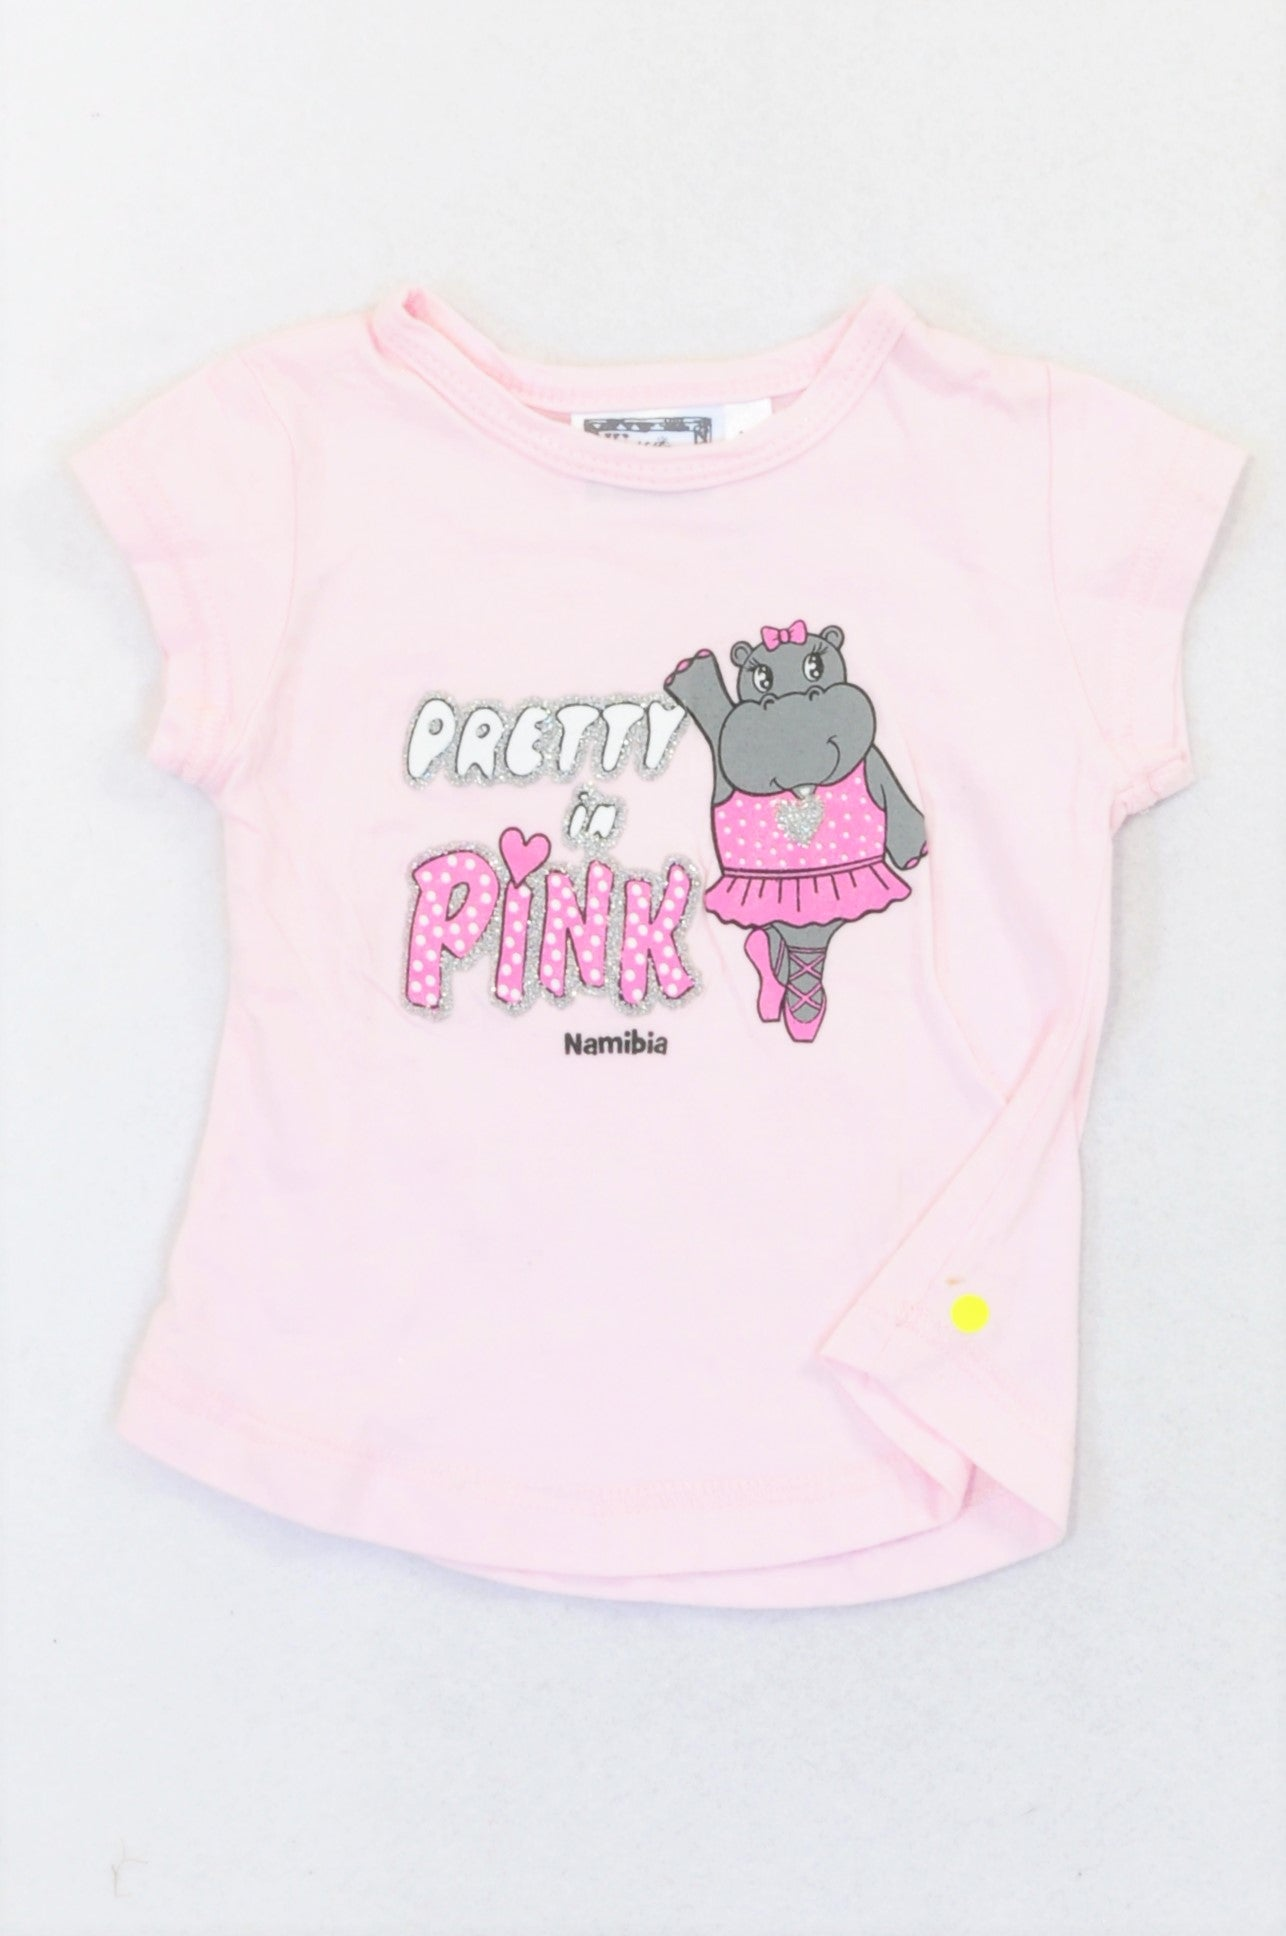 It's Africa Pretty in Pink Namibian Ballerina Hippo T-shirt Girls 12-18 months